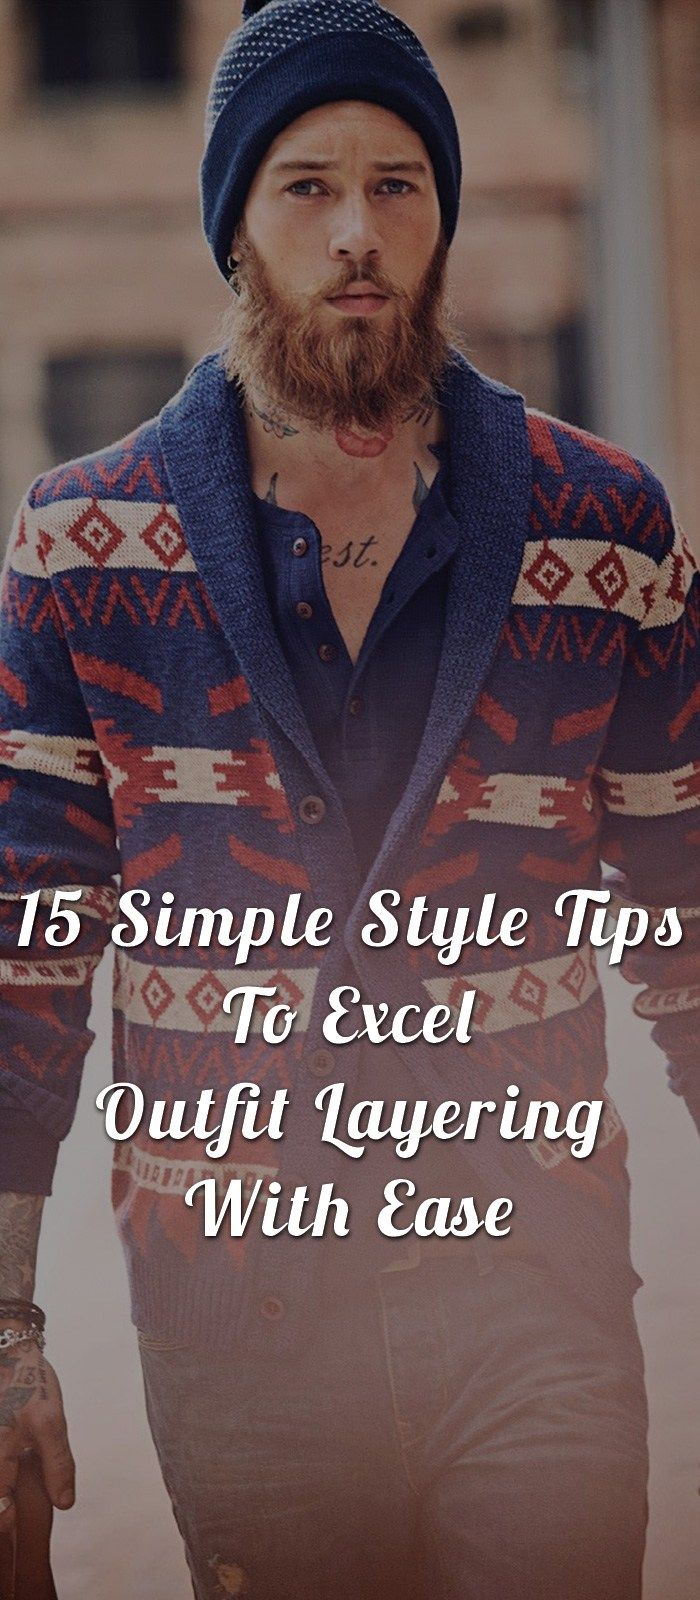 7 Outfit Layering Ideas For Men S Everyday Styling Layering Outfits Mens Fashion Rugged Mens Fashion White